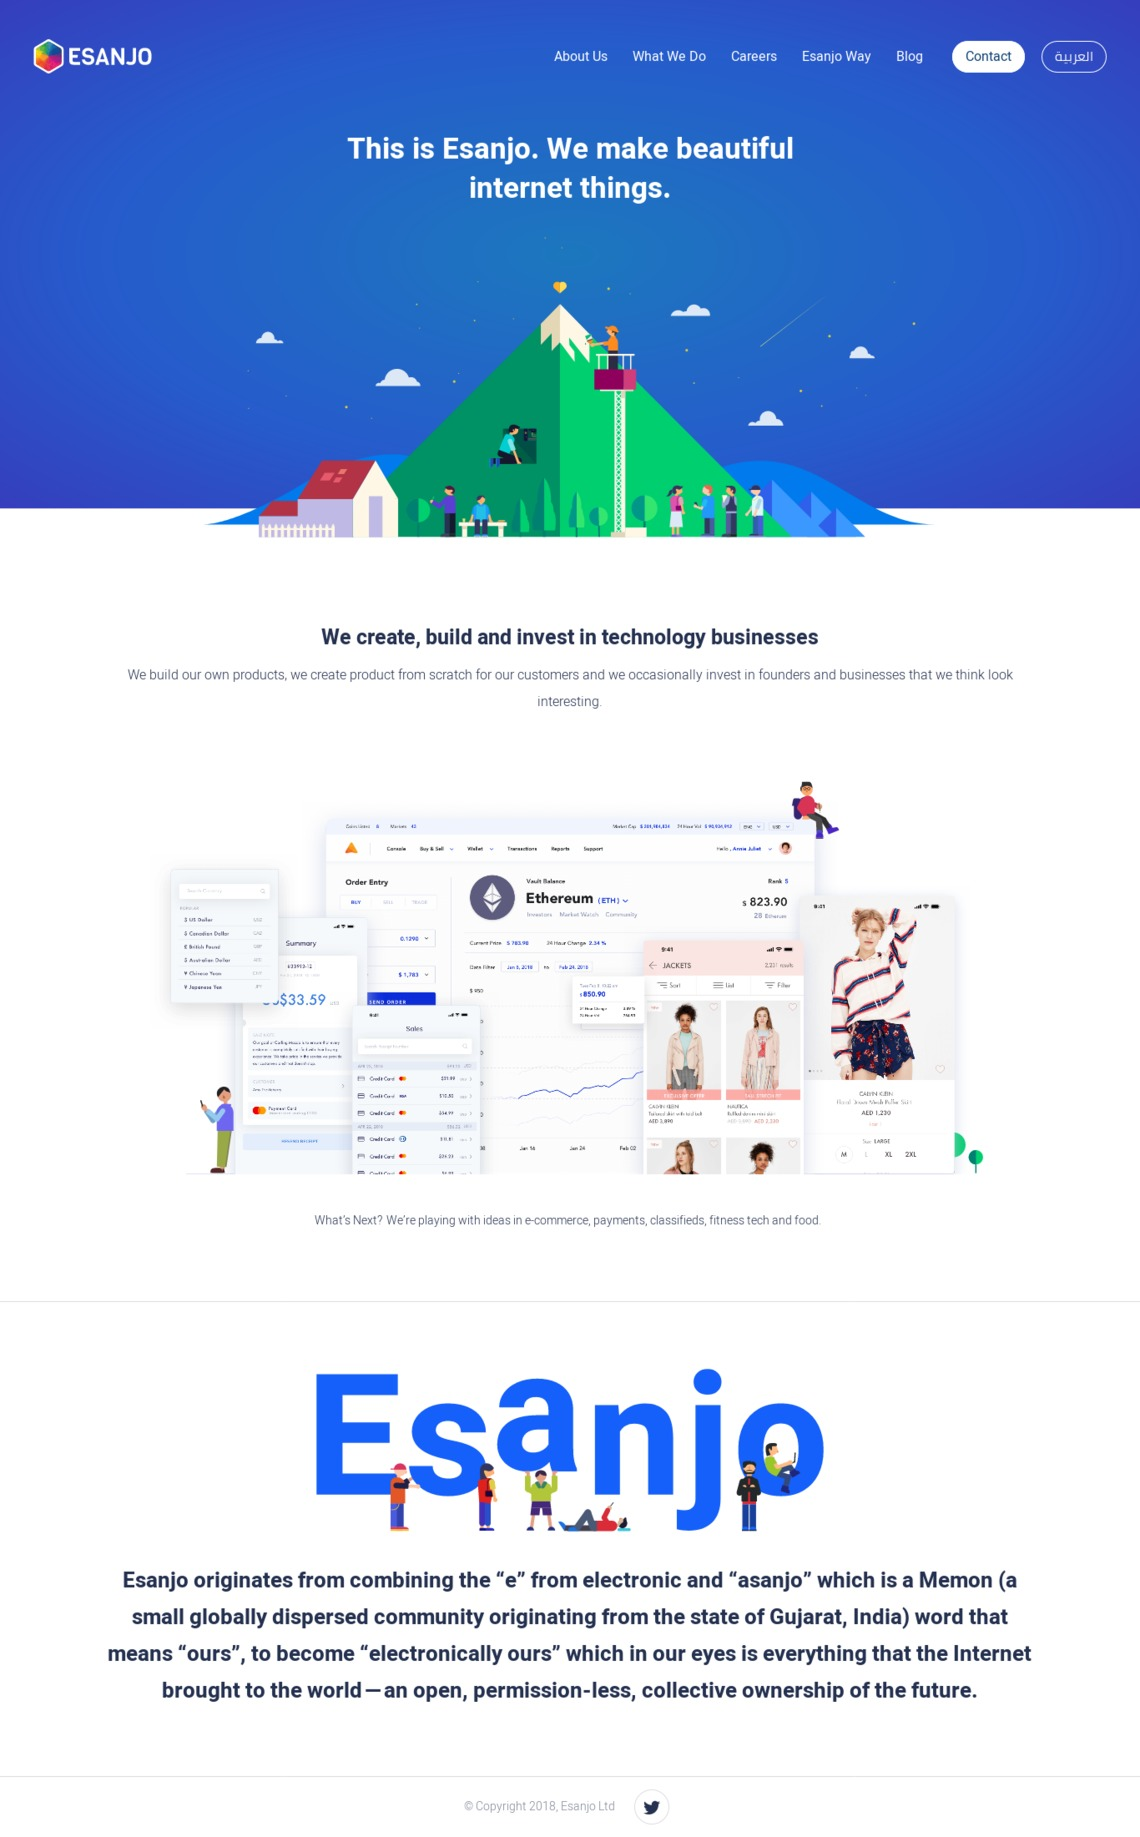 Esanjo: We create, build and invest in beautiful technology businesses